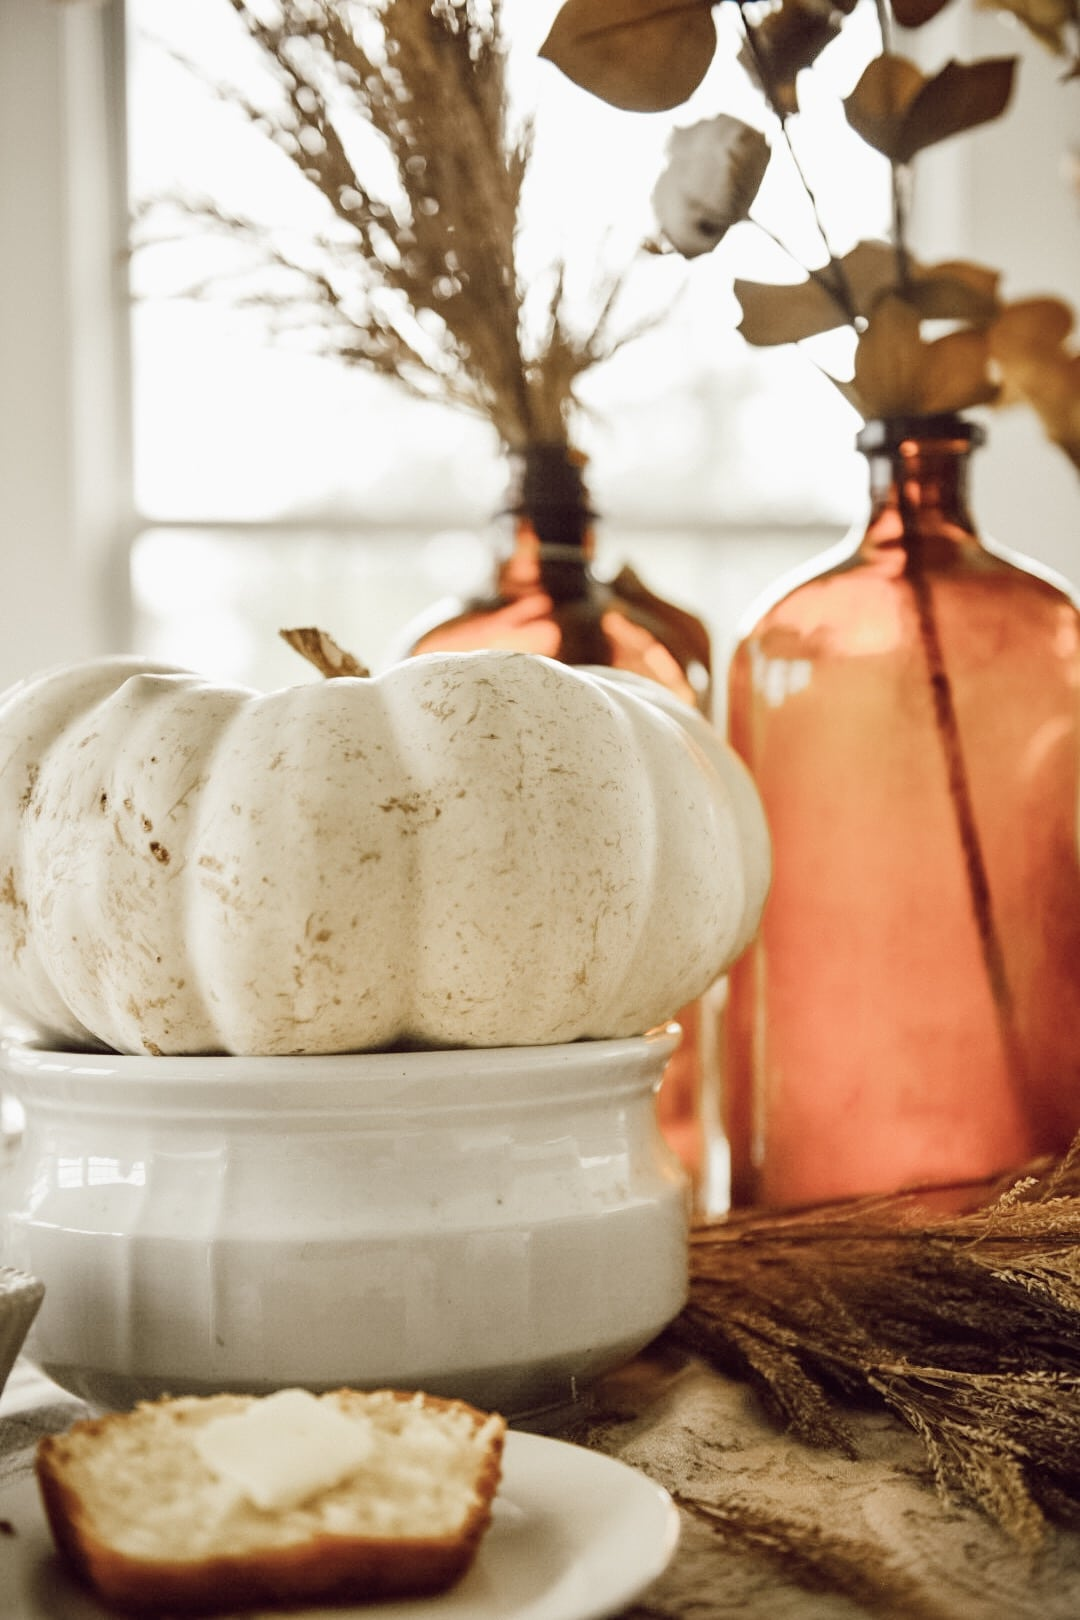 How to use Pumpkins for Fall Decor